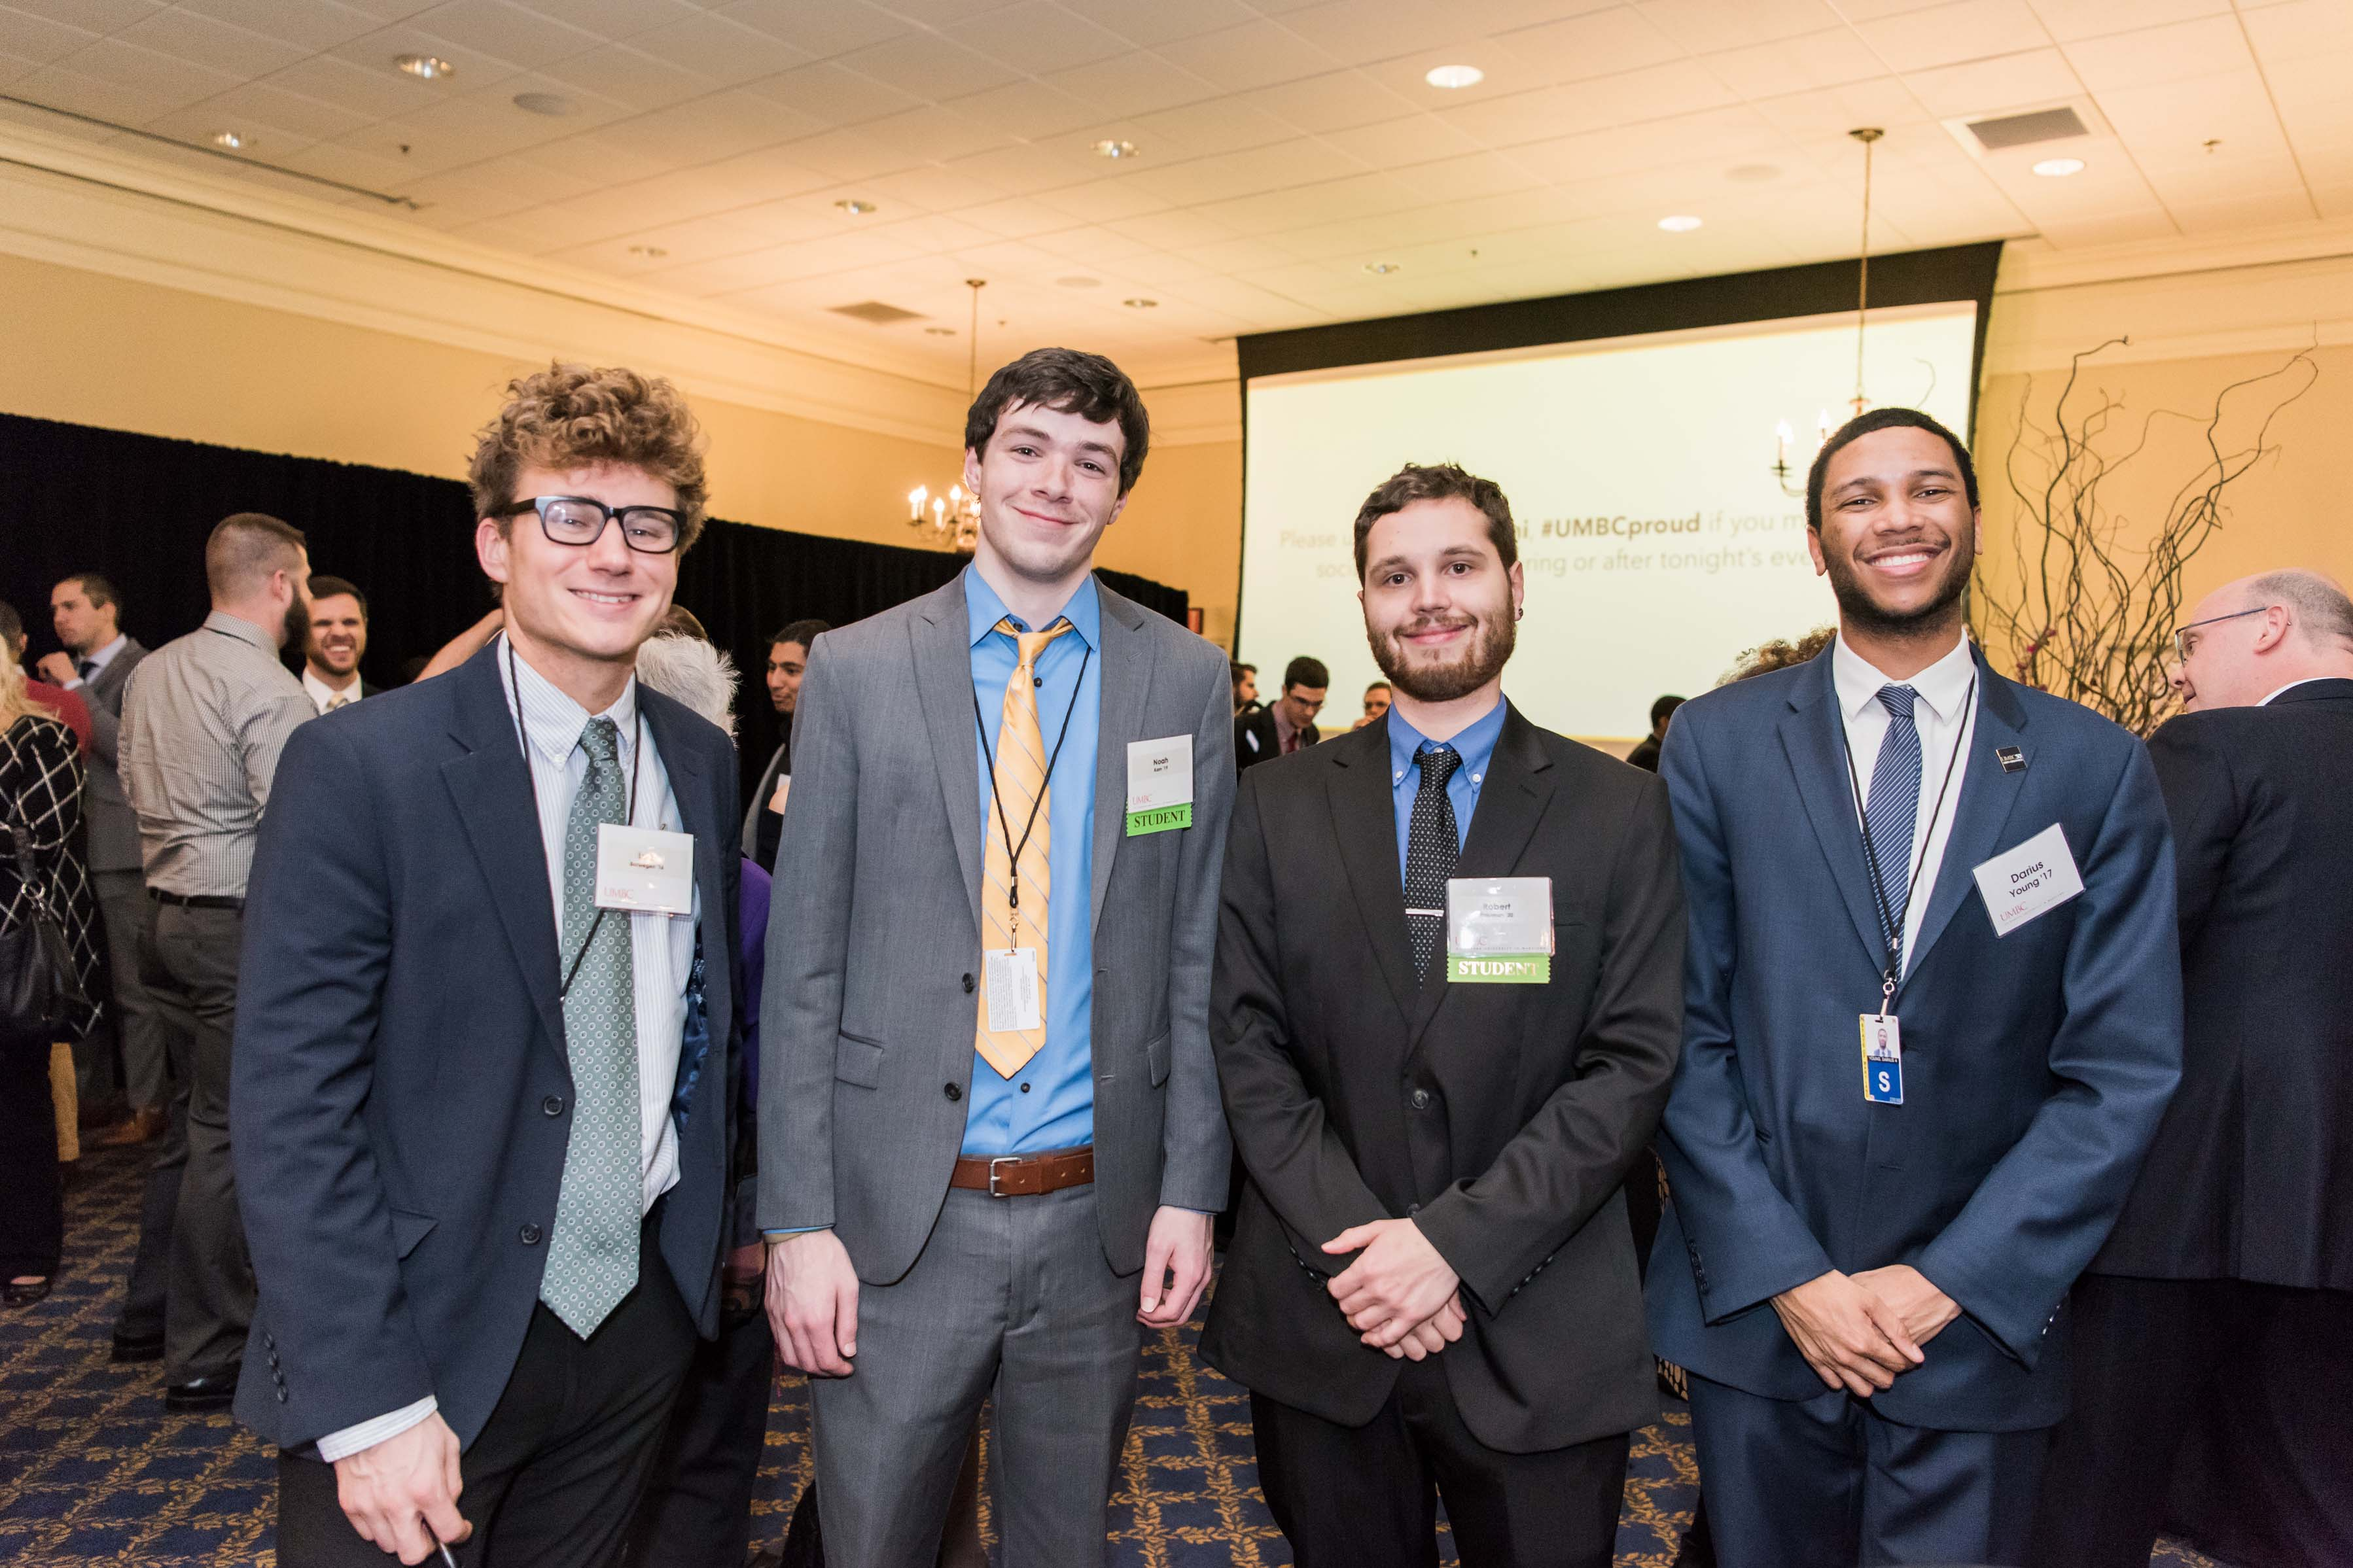 Four men stand side by side at Annapolis Alumni Reception